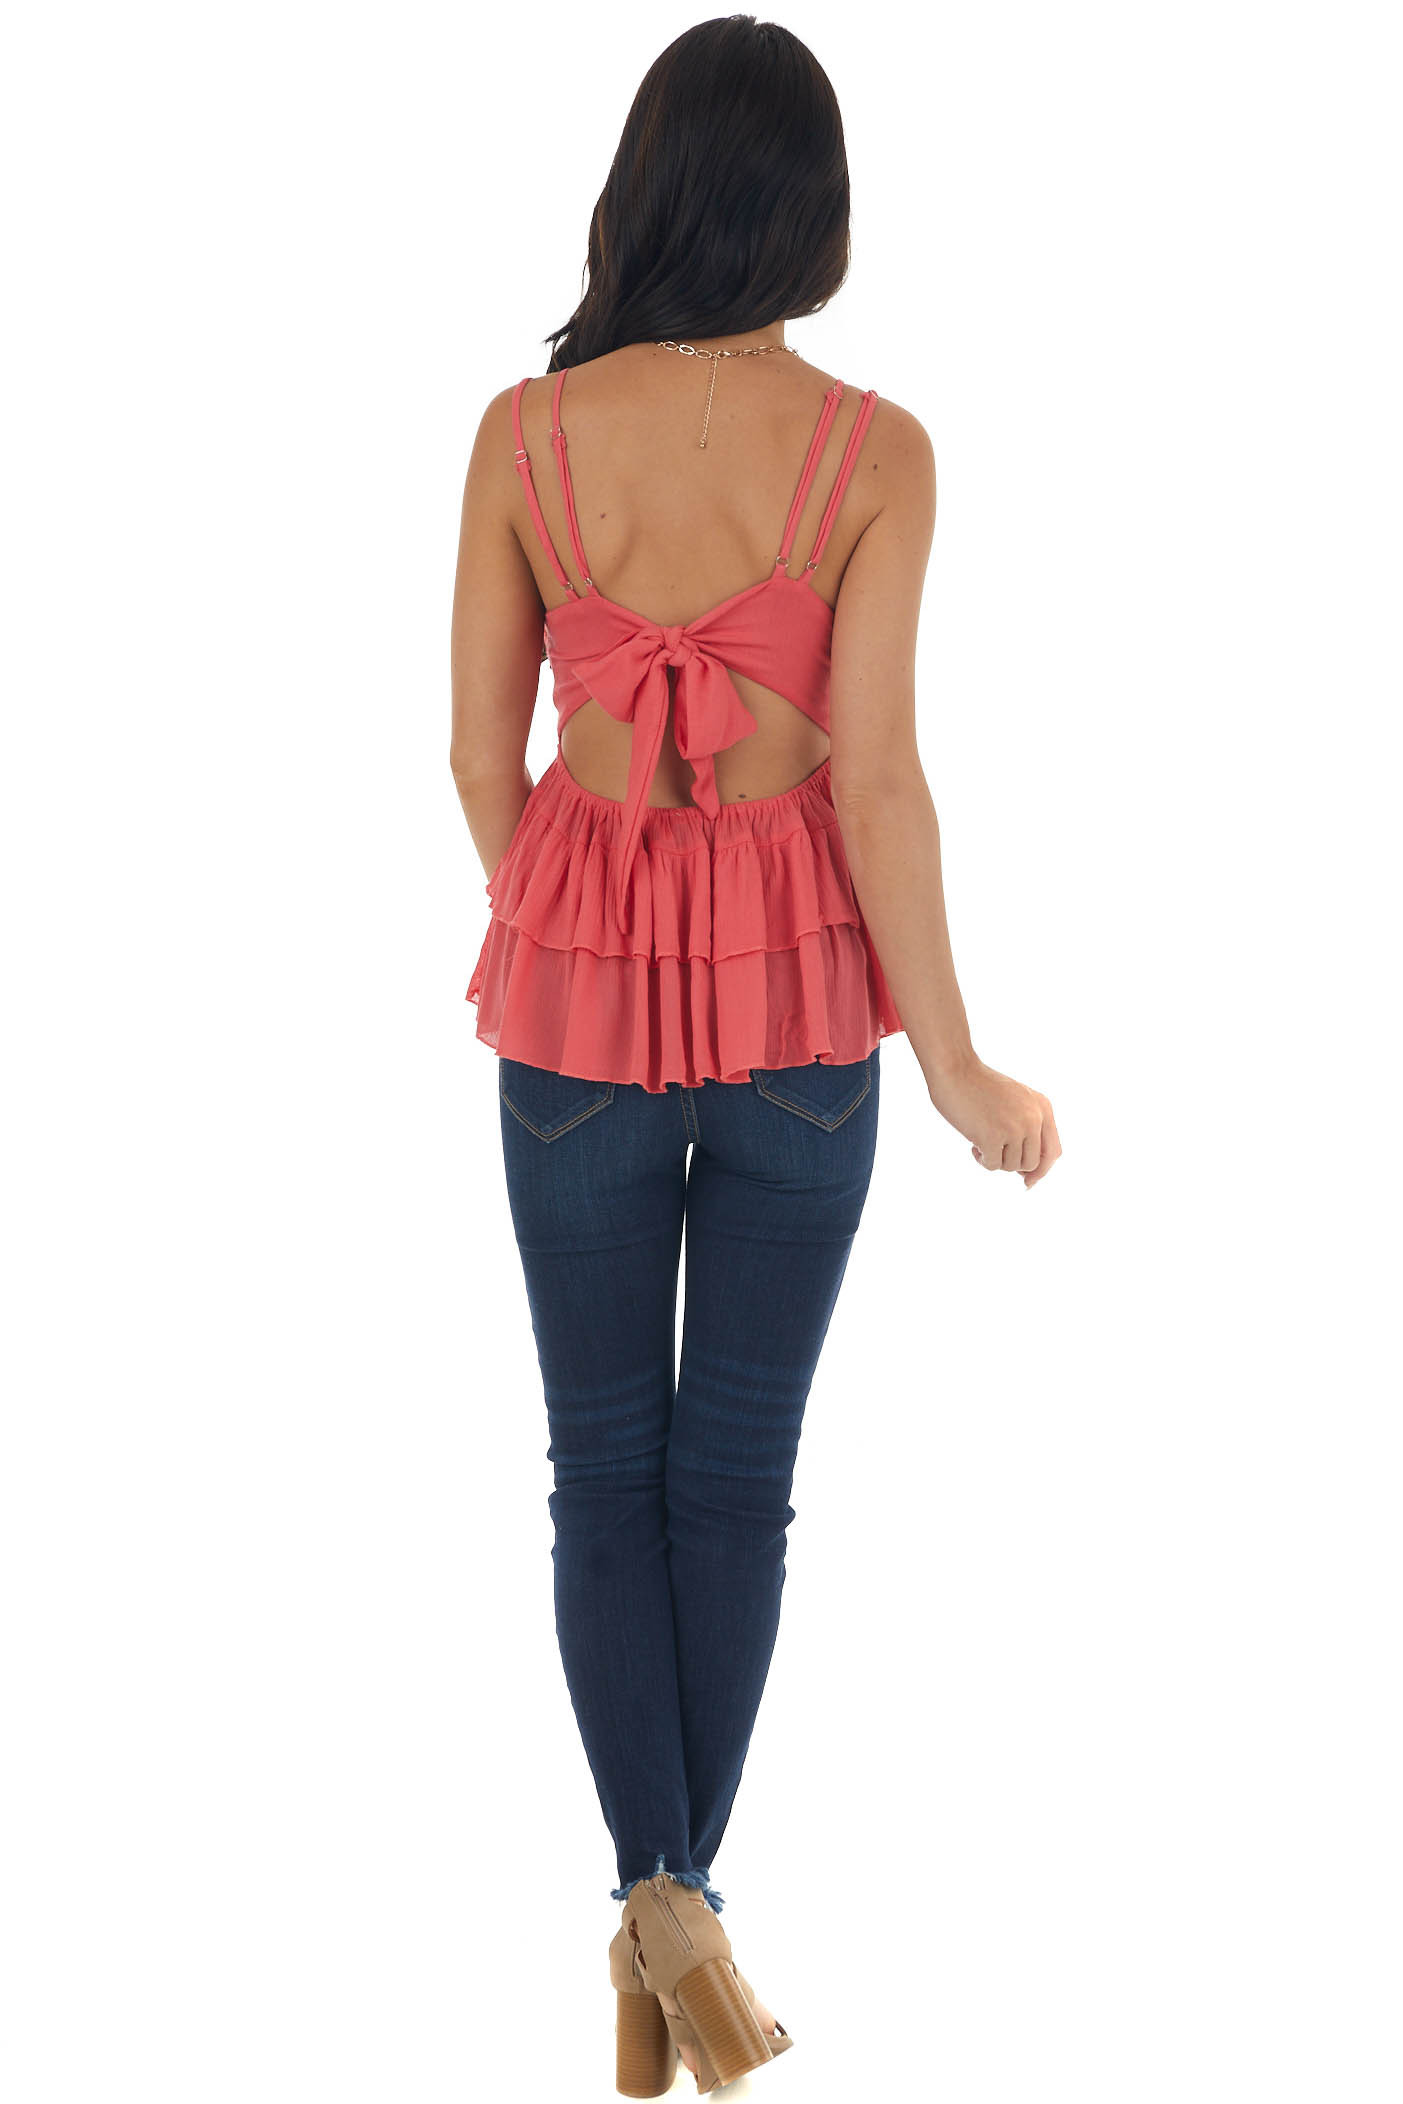 Bright Coral Crochet Lace Top with Bow Tie Back